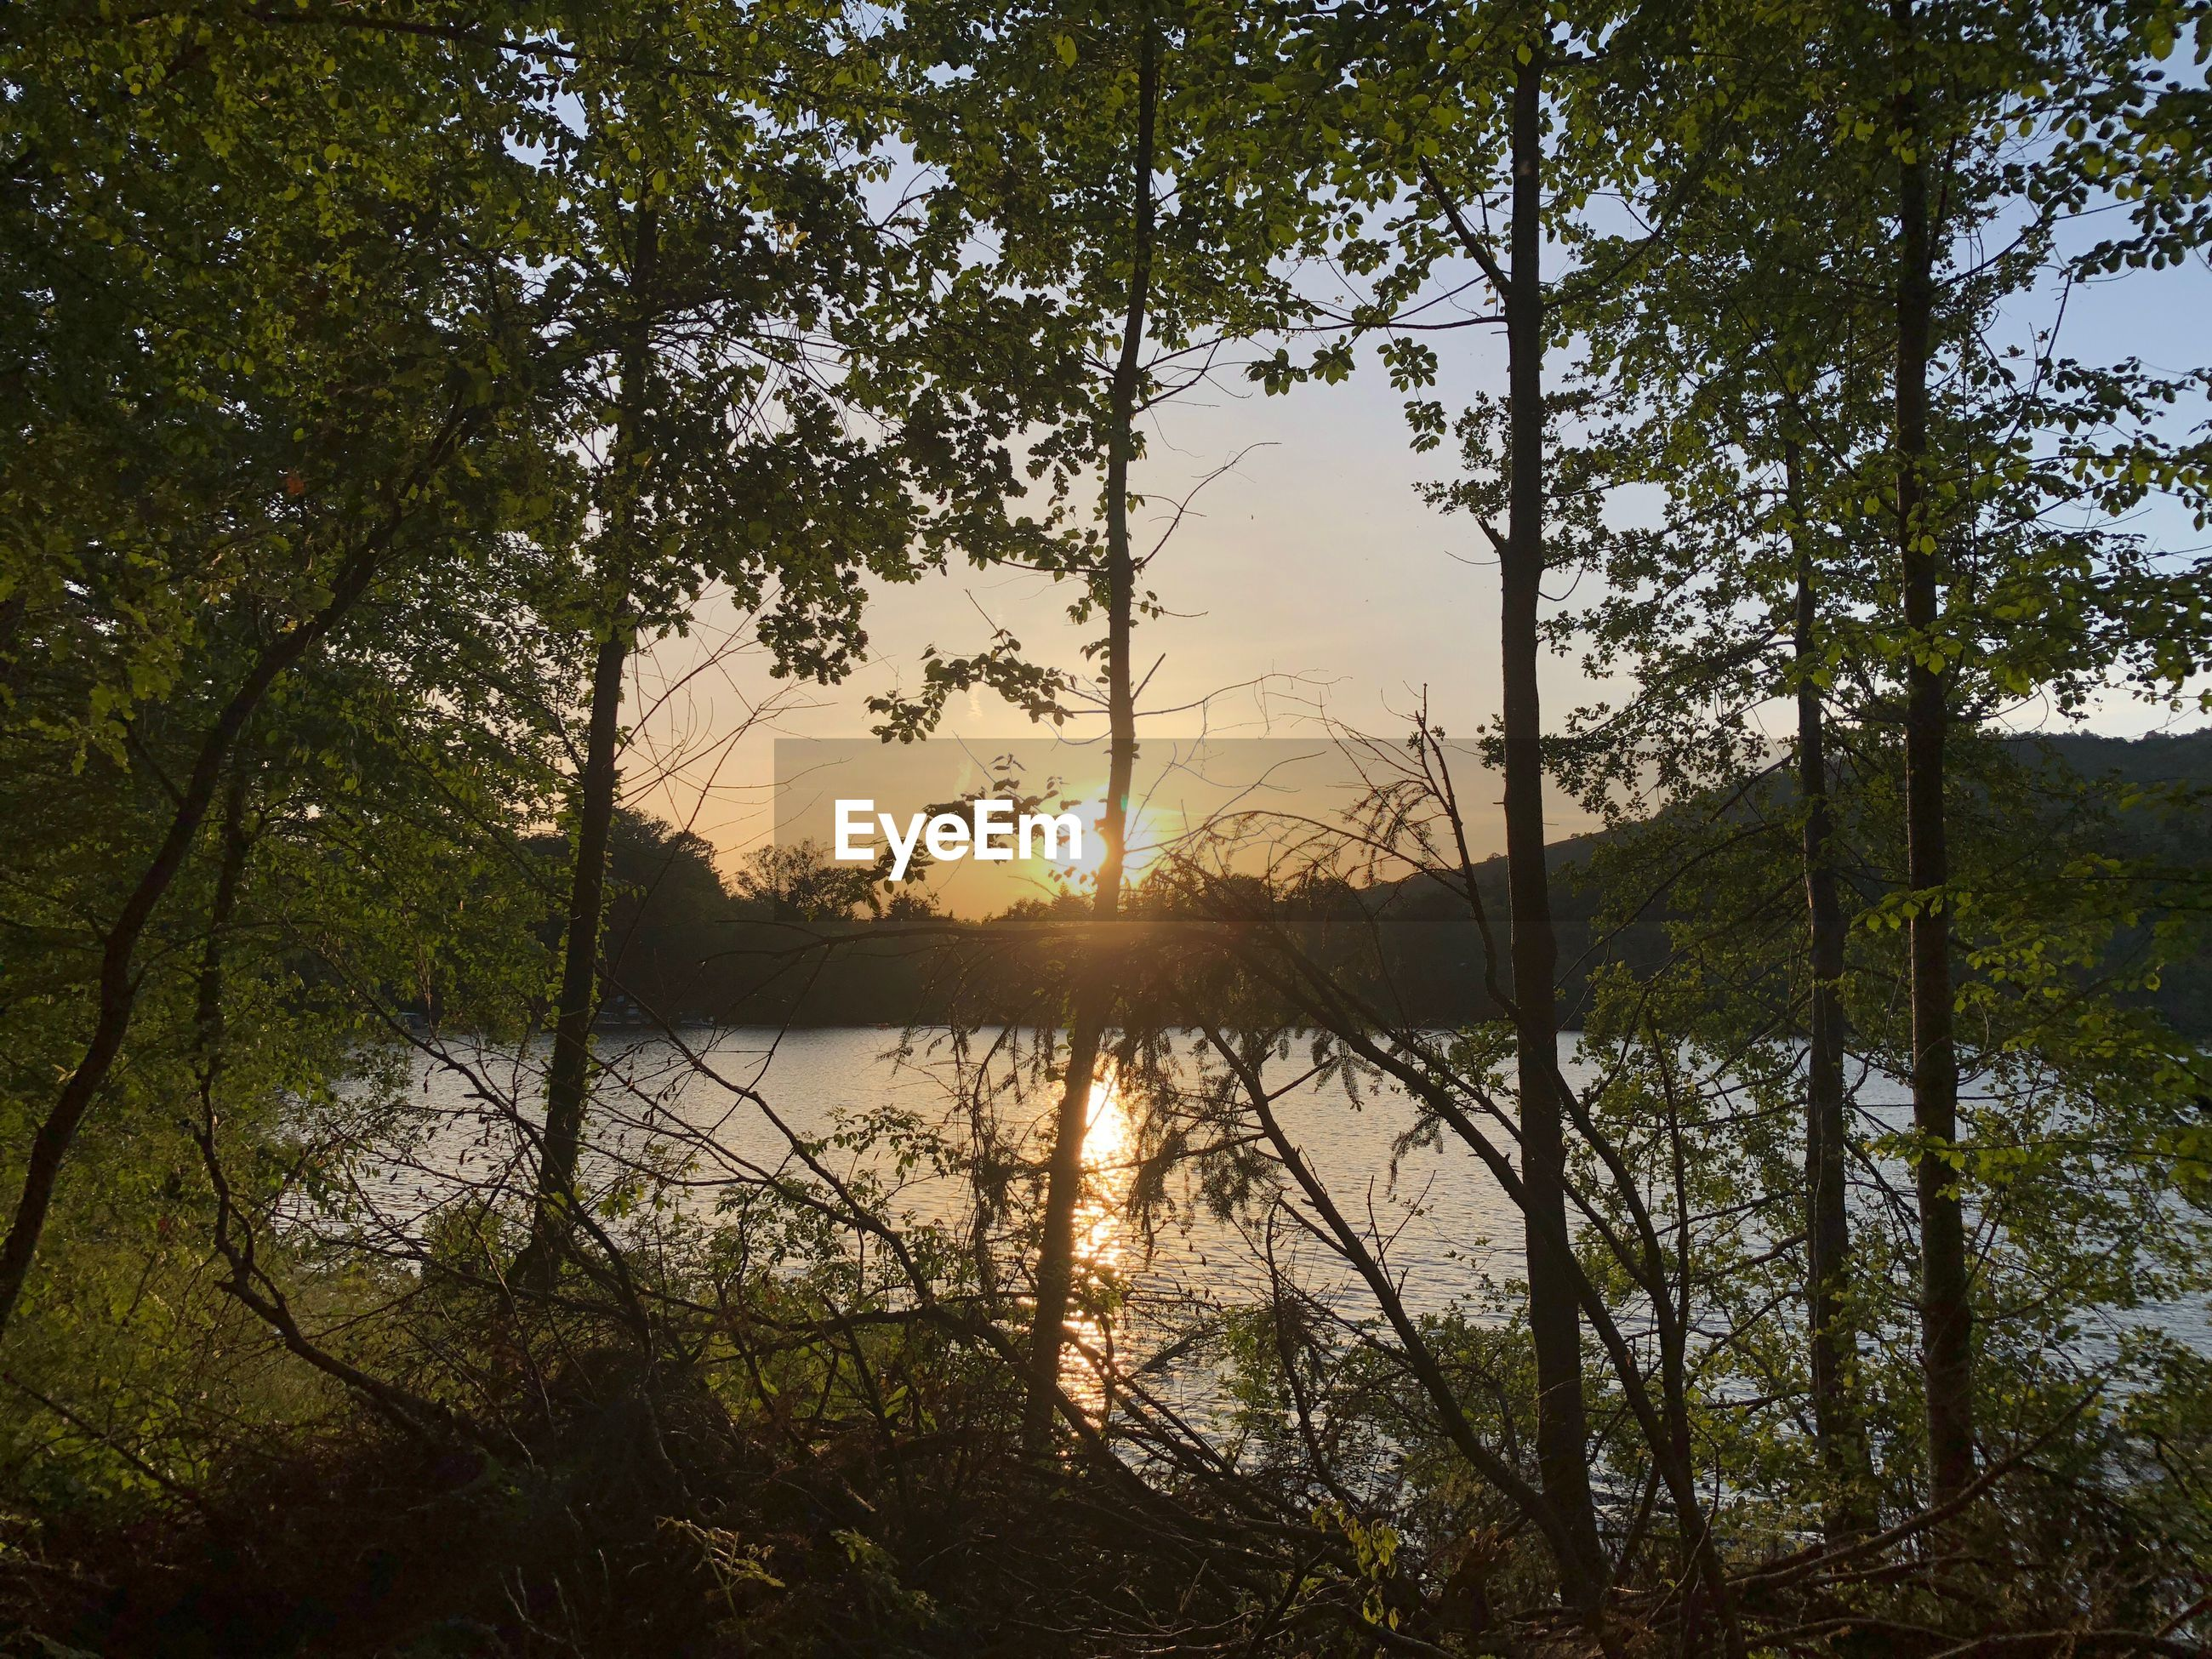 SCENIC VIEW OF LAKE IN FOREST DURING SUNSET